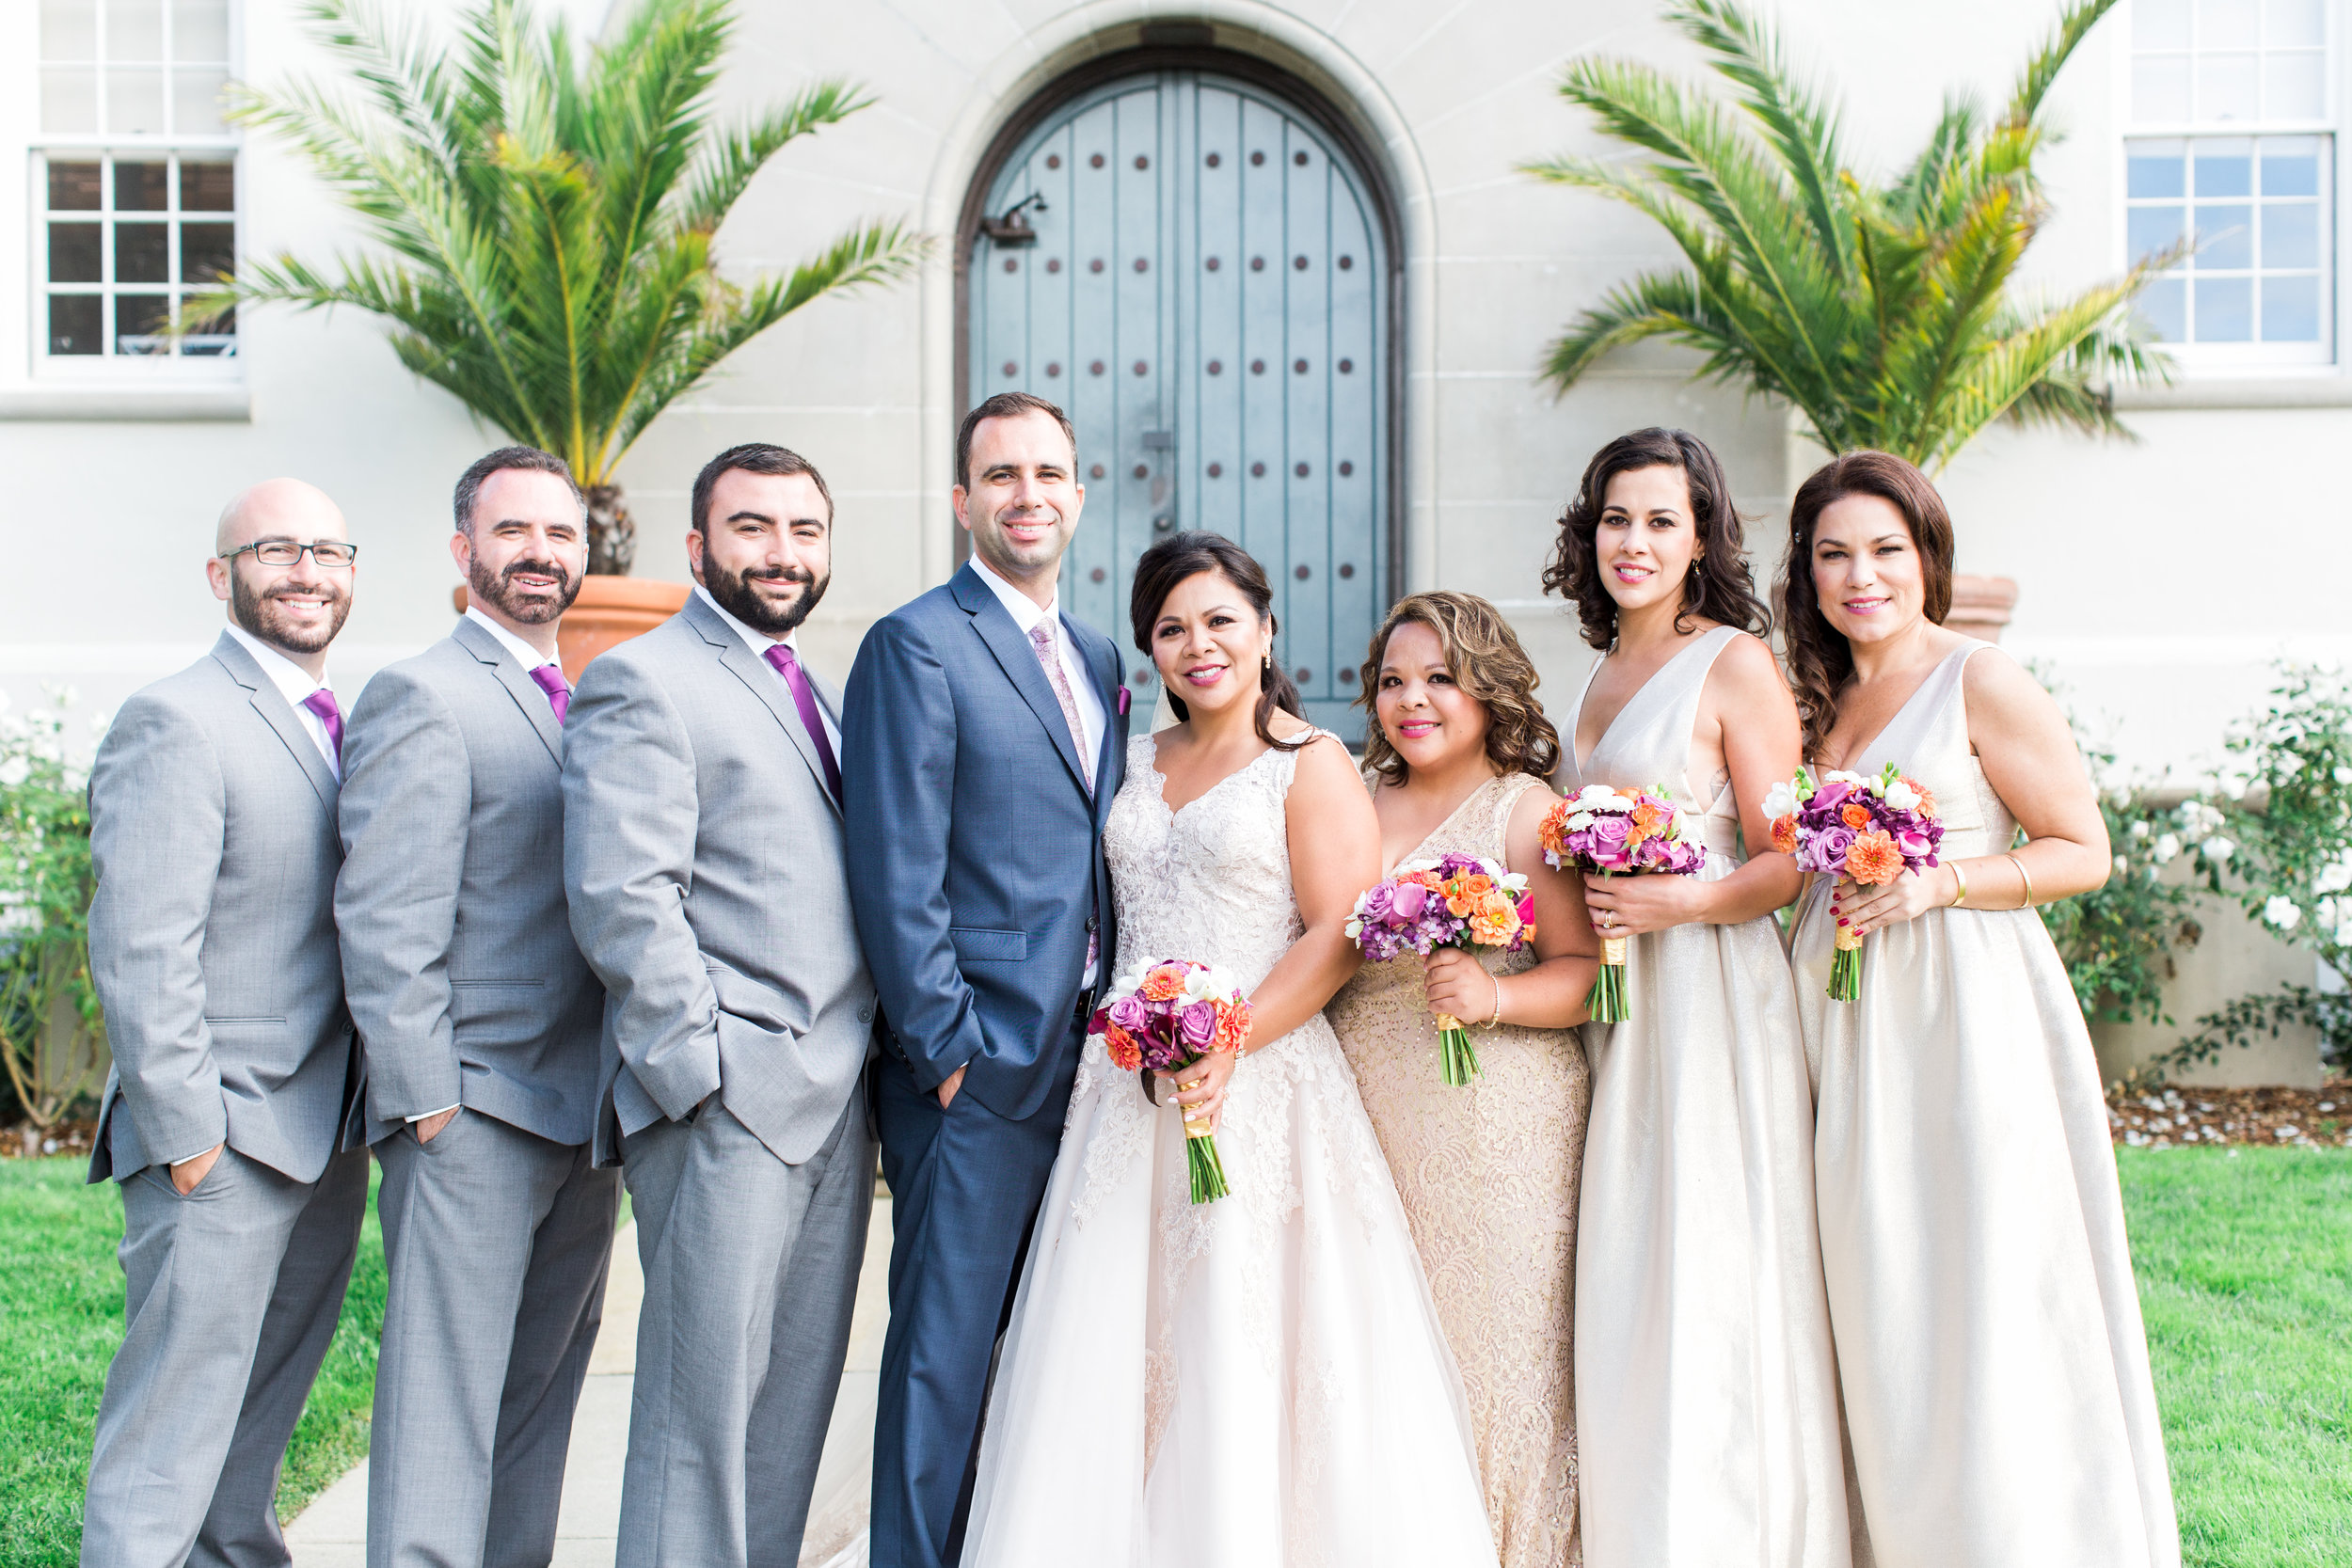 style-inspired-wedding-at-firehouse-8-in-san-francisco-51.jpg